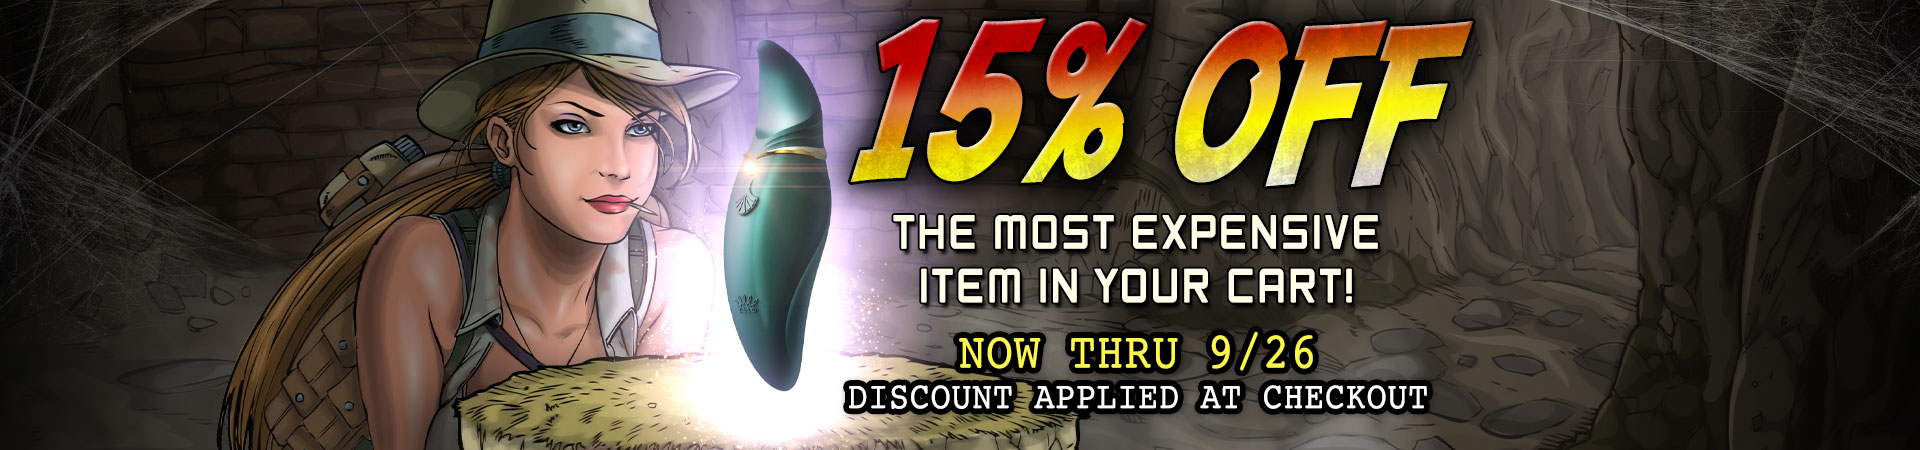 15% Off Most Expensive Item In Your Cart - Now's The Time To Get The Toy You've Been Lusting After!